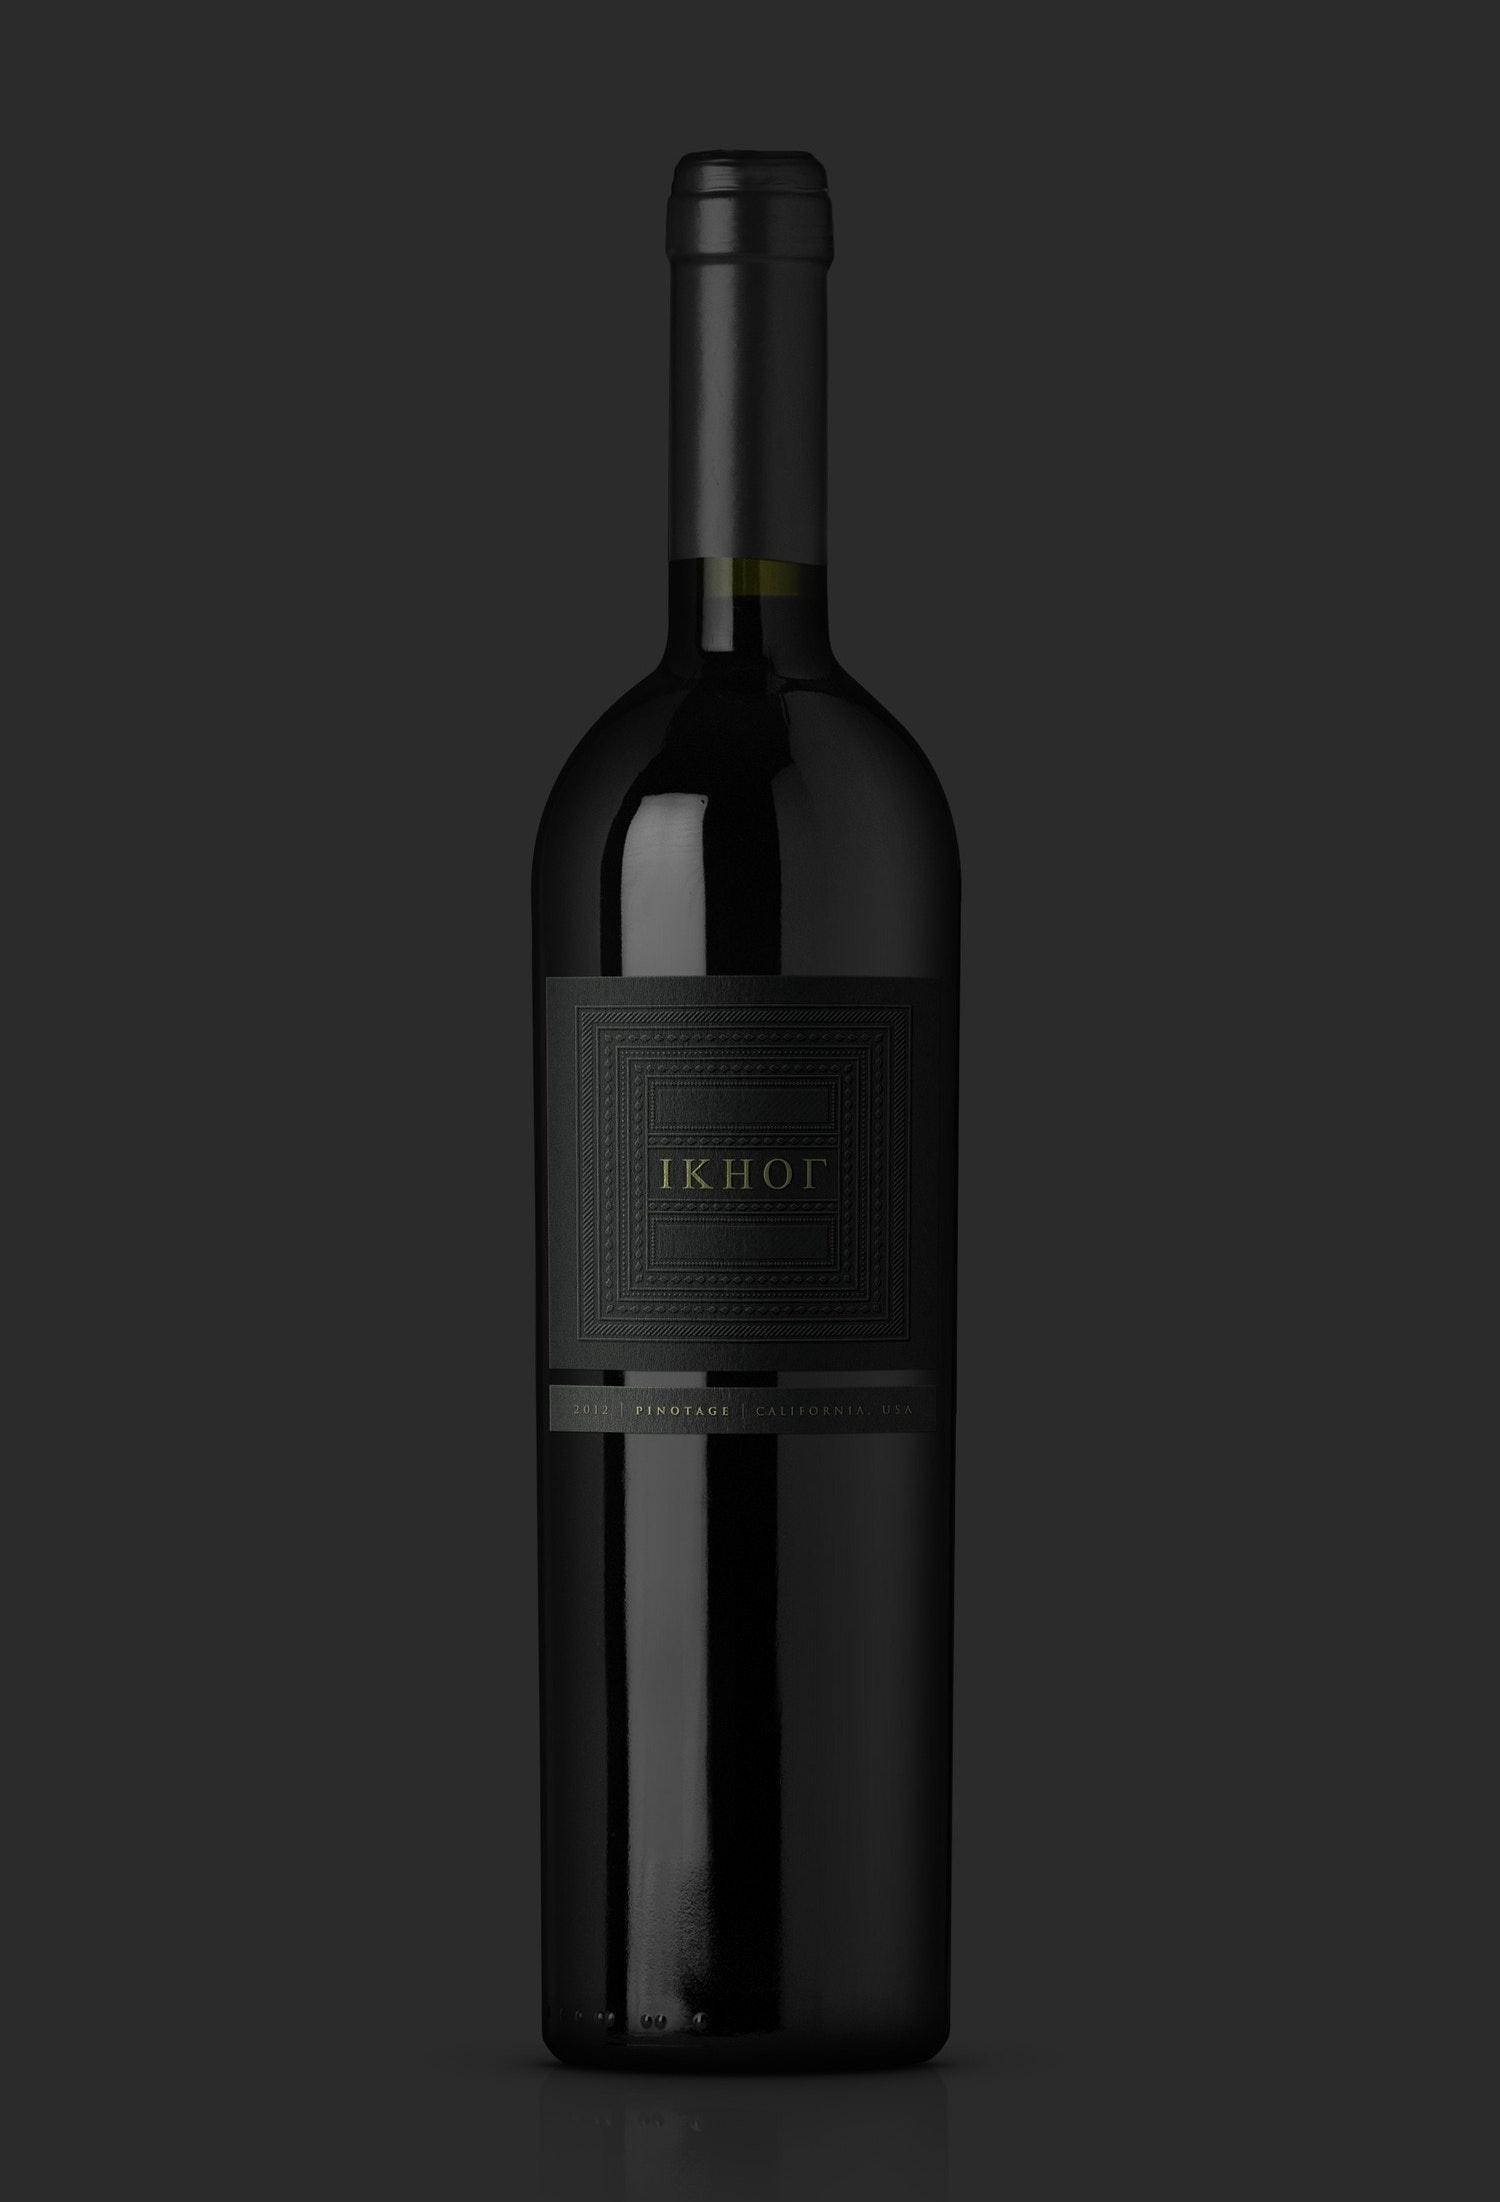 all-black wine label design